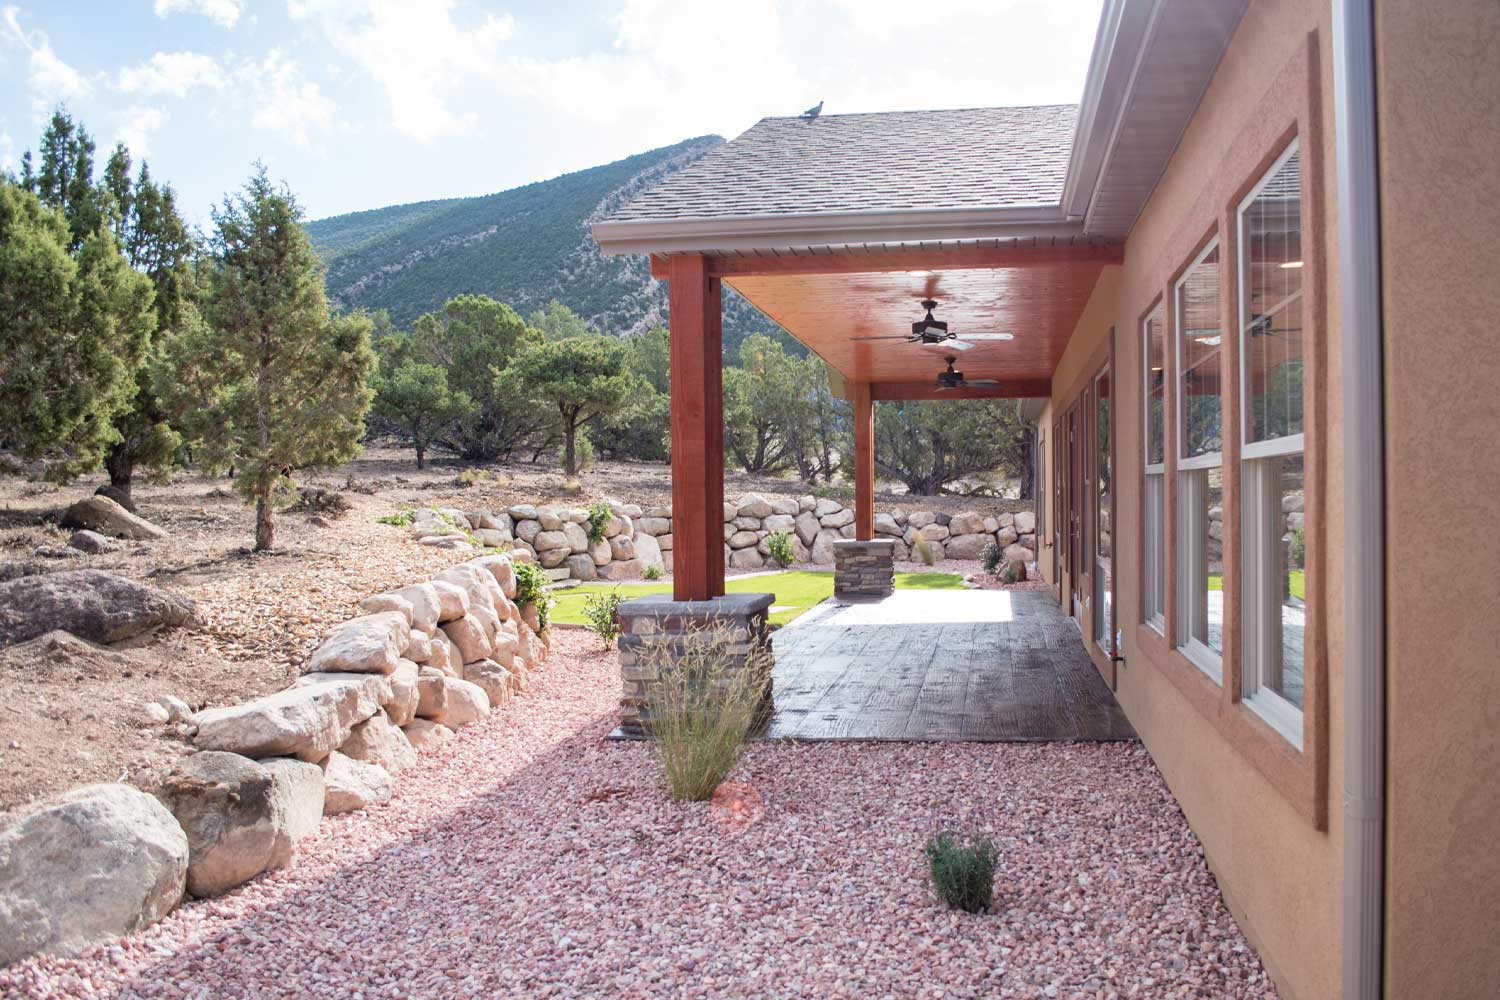 back patio exterior, small red rock gravel, smooth stamped dark brown concrete, rock retaining wall and pine trees, blue sky with light clouds